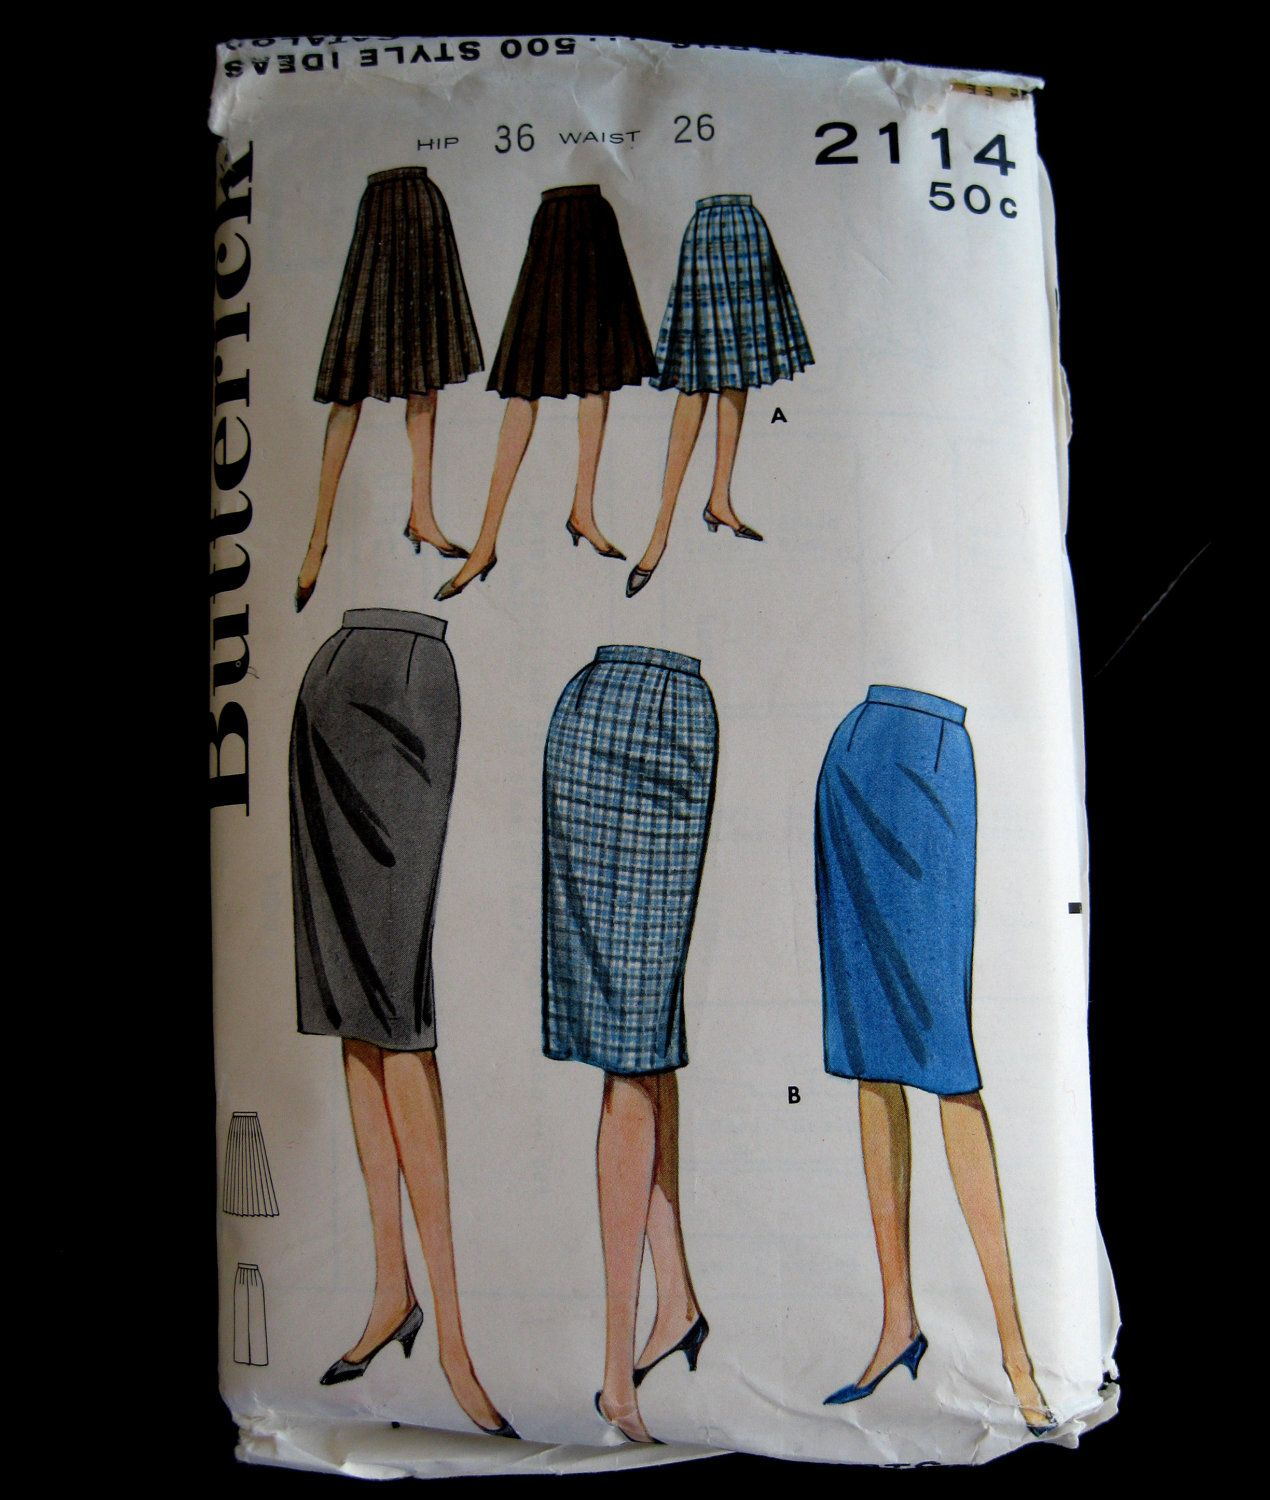 Butterick 2114 1960s Misses Skirt Pattern Waist 26  Straight or Pleated UNCUT FF Proportioned Pattern, Short, Medium, Tall, Vintage 1961. $10.00, via Etsy.